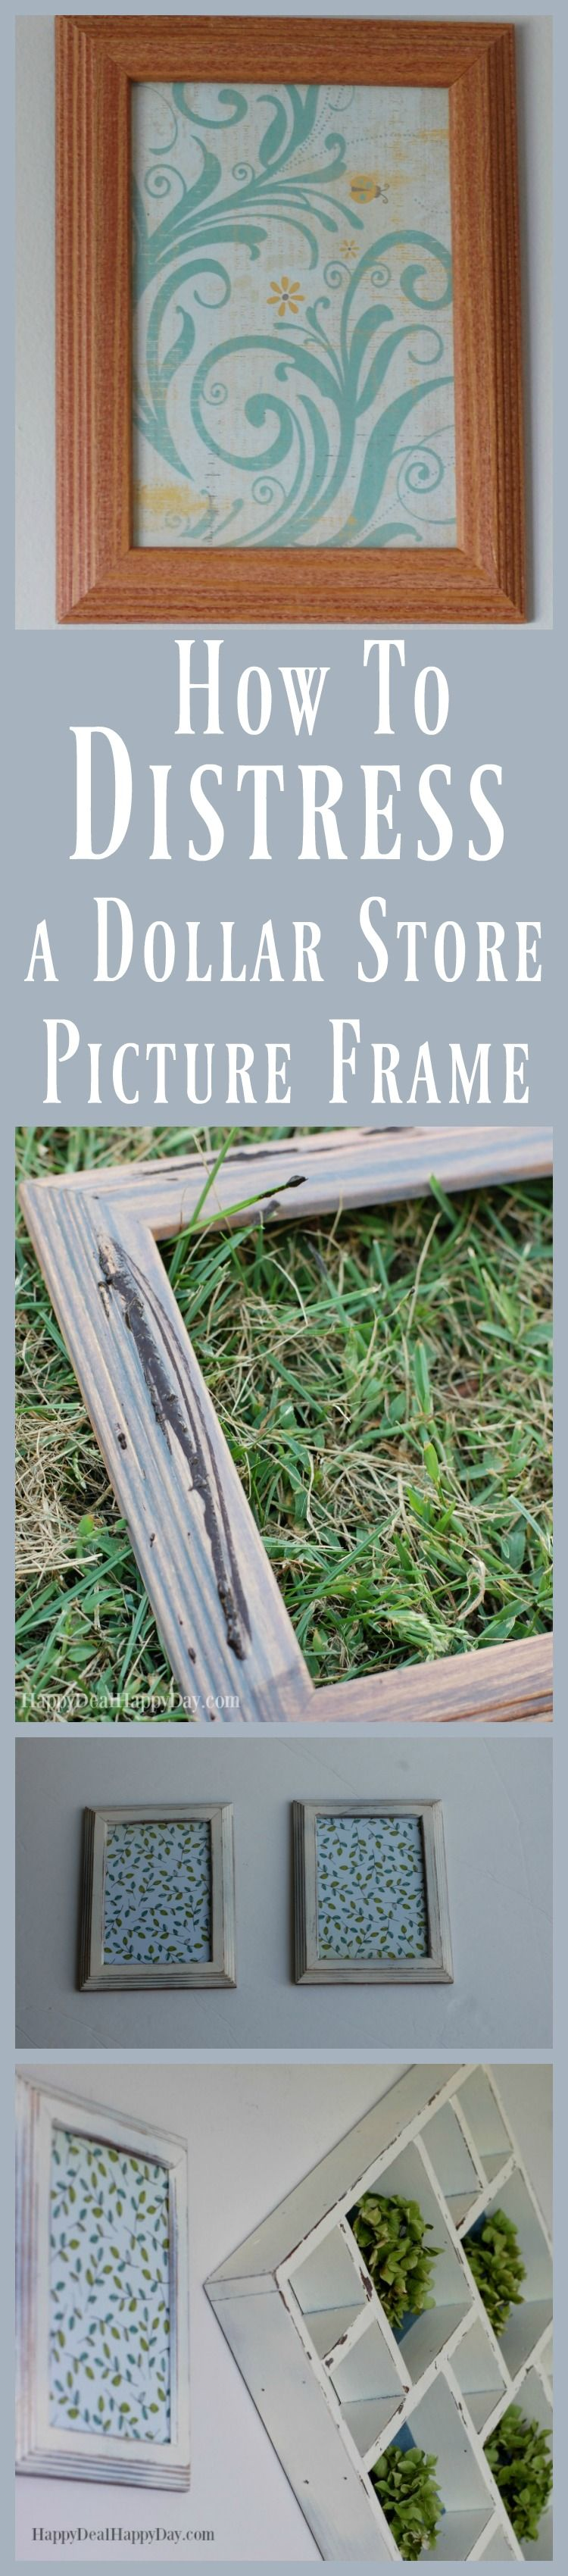 How To Distress A Picture Frame From The Dollar Tree!